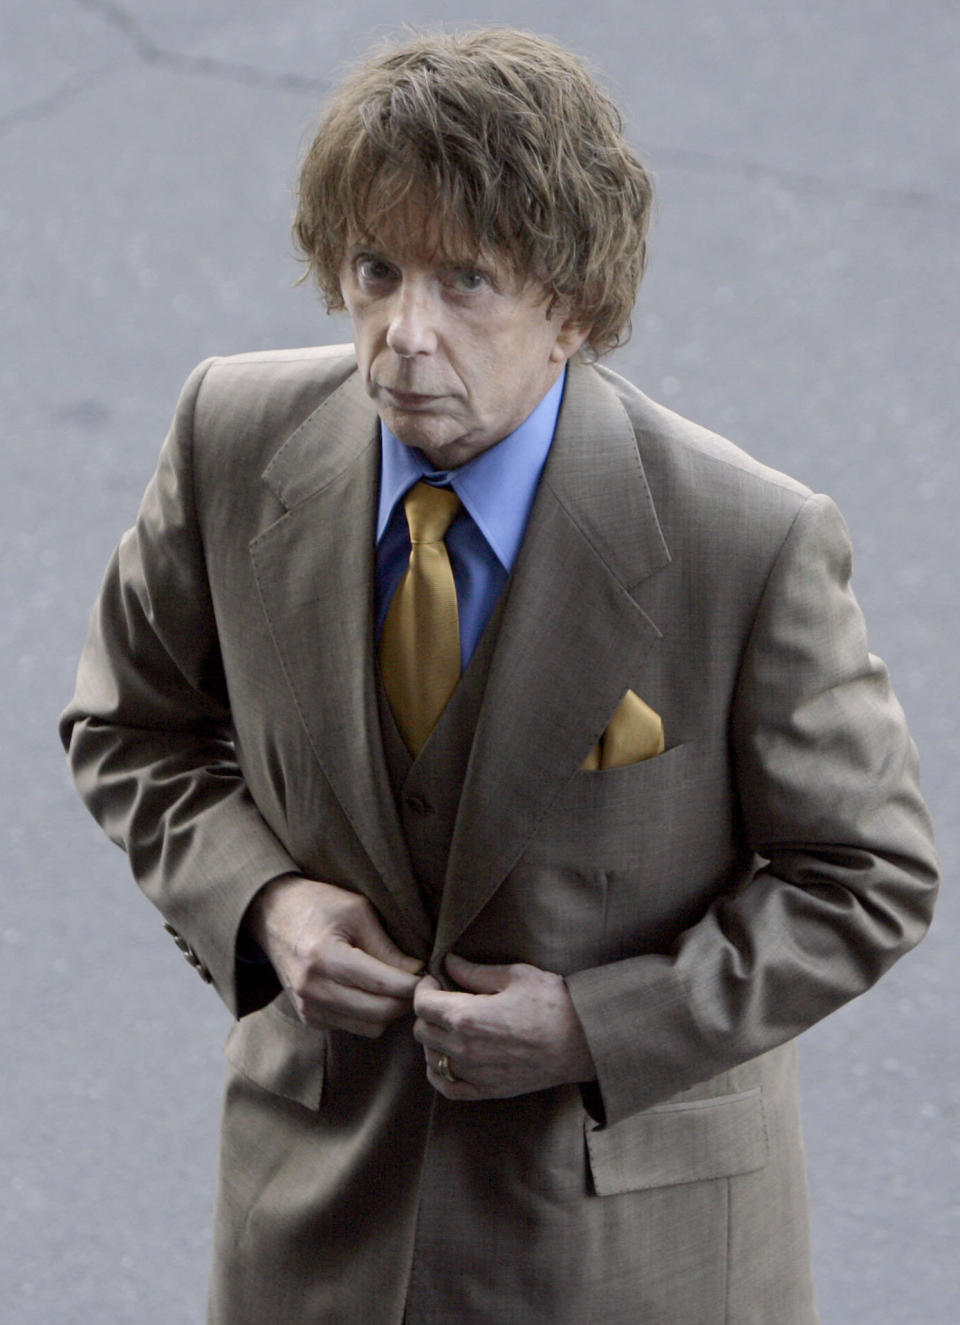 Phil Spector arriving at Los Angeles Superior Court in 2007. Source: AP